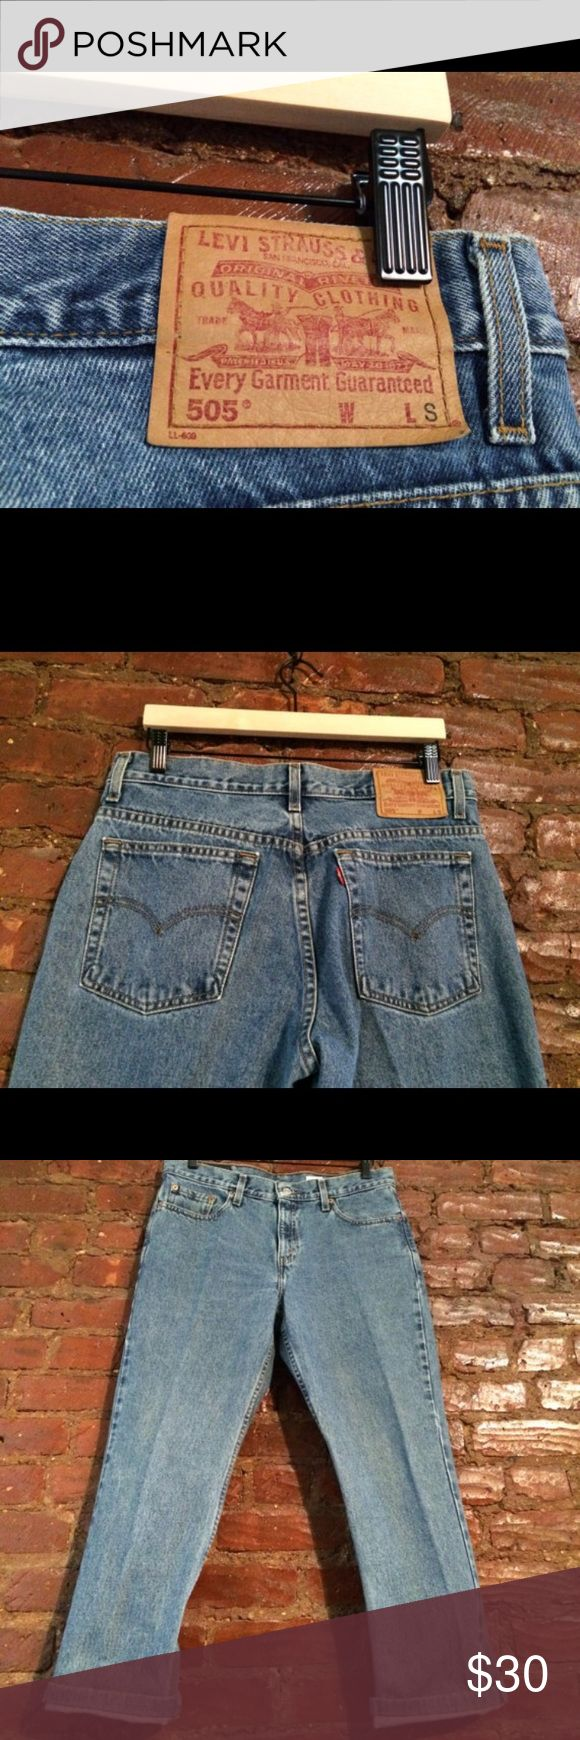 1990's Vintage Levi 505 Jeans Awesome baggie boyfriend 1990's Vintage Levi 505 Jeans. They have a zipper and one bottom on the top.    Material: Jean   Tags: Levi  Size: size 34 with short length (look at measurements down below)  Condition: Everything good except right bottom leg has a small hem (reference to photo for size)  Flat Measurements: Waist- 16' Hip- 18 1/2' Length- 36' Leg bottom width: 7 3/4'  *If you have any questions feel free to contact me ! Jeans Boyfriend